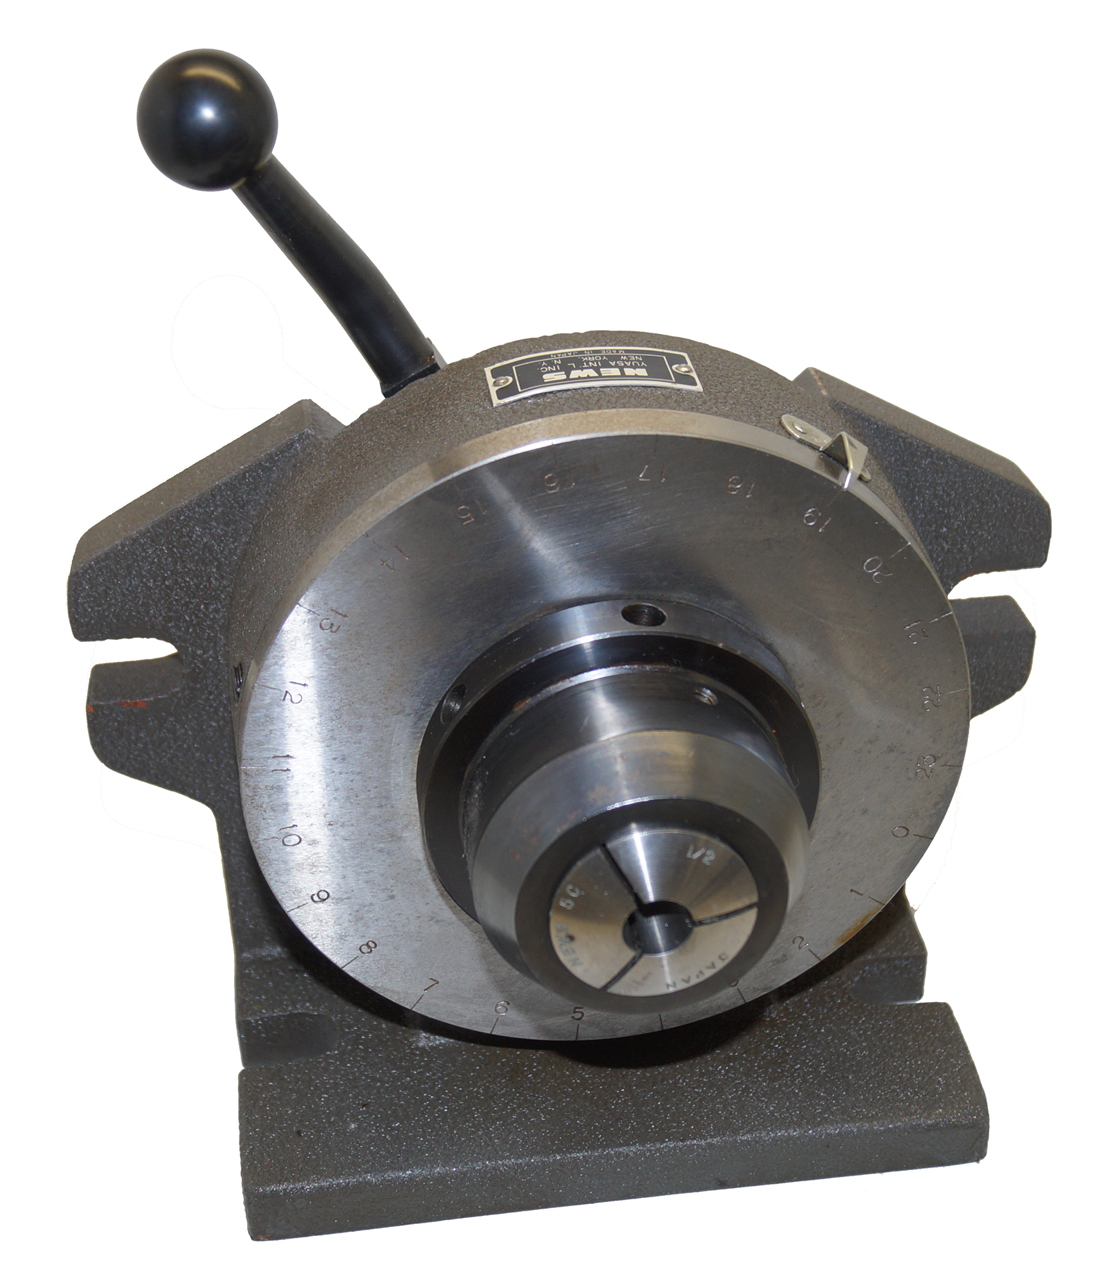 5C Collet Index - Yuasa Rapidex Workholding Positioiner